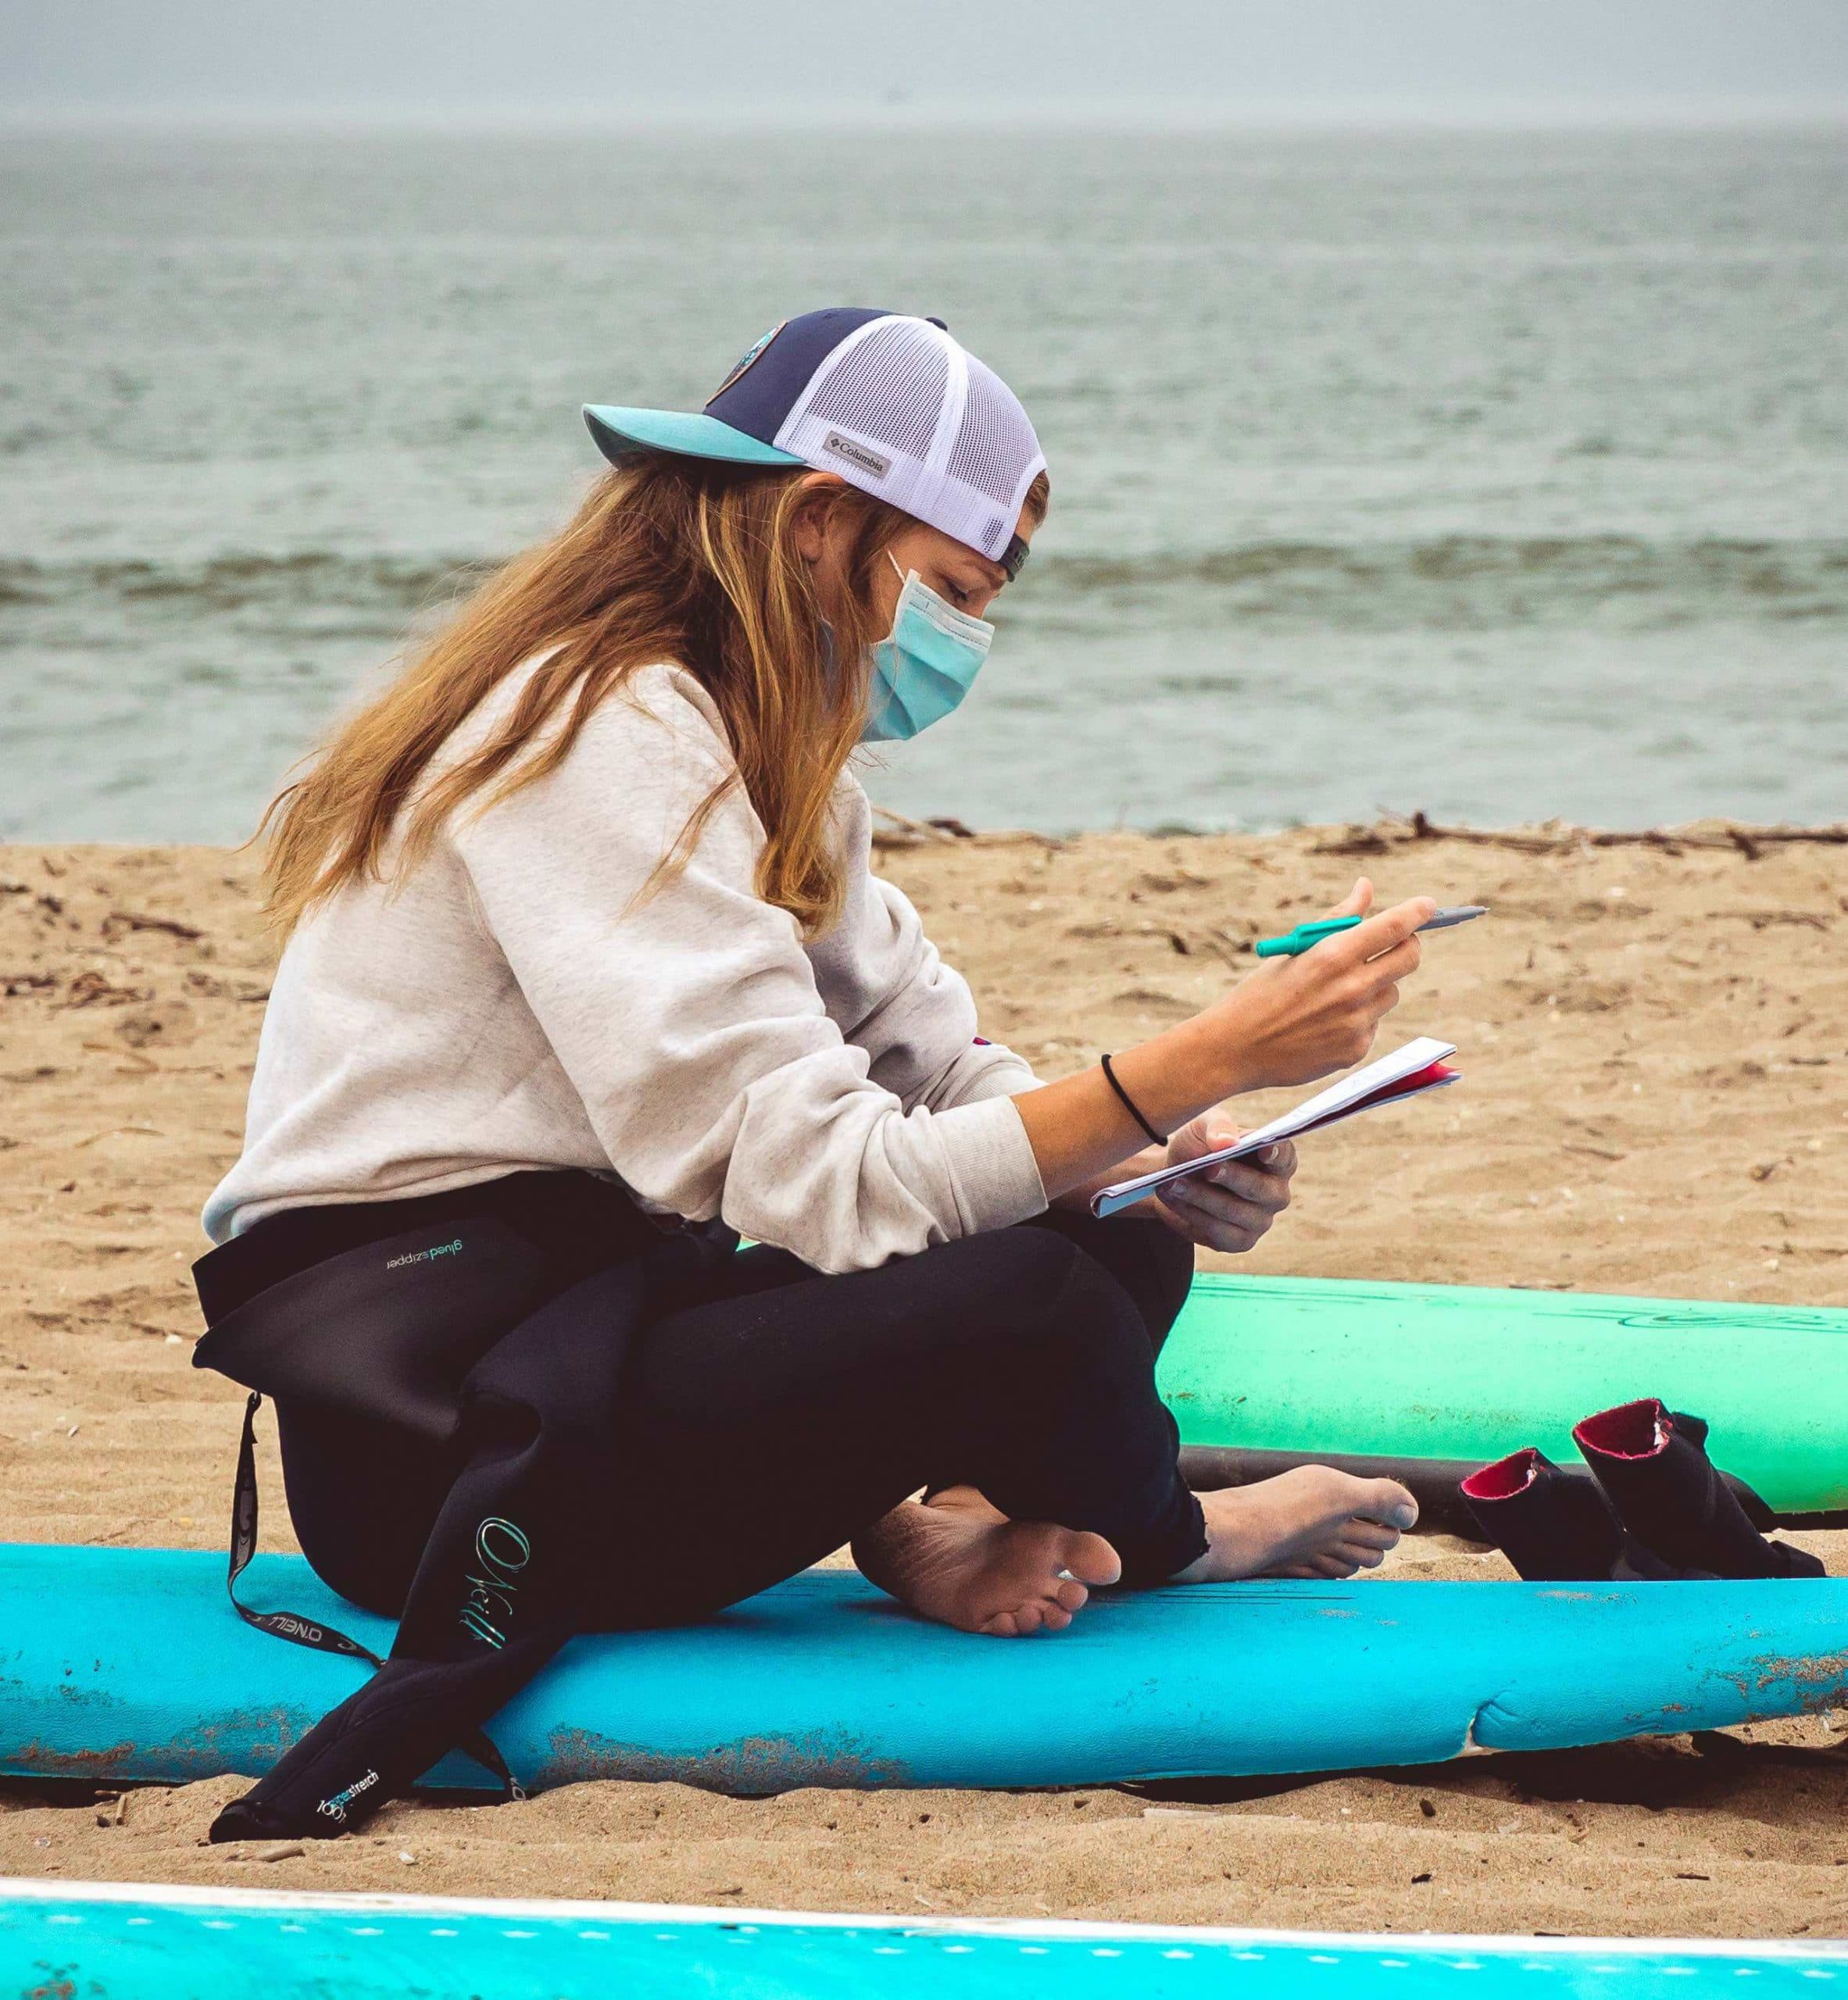 photo of a surf therapy participant sitting on a surfboard on the beach, writing in a journal